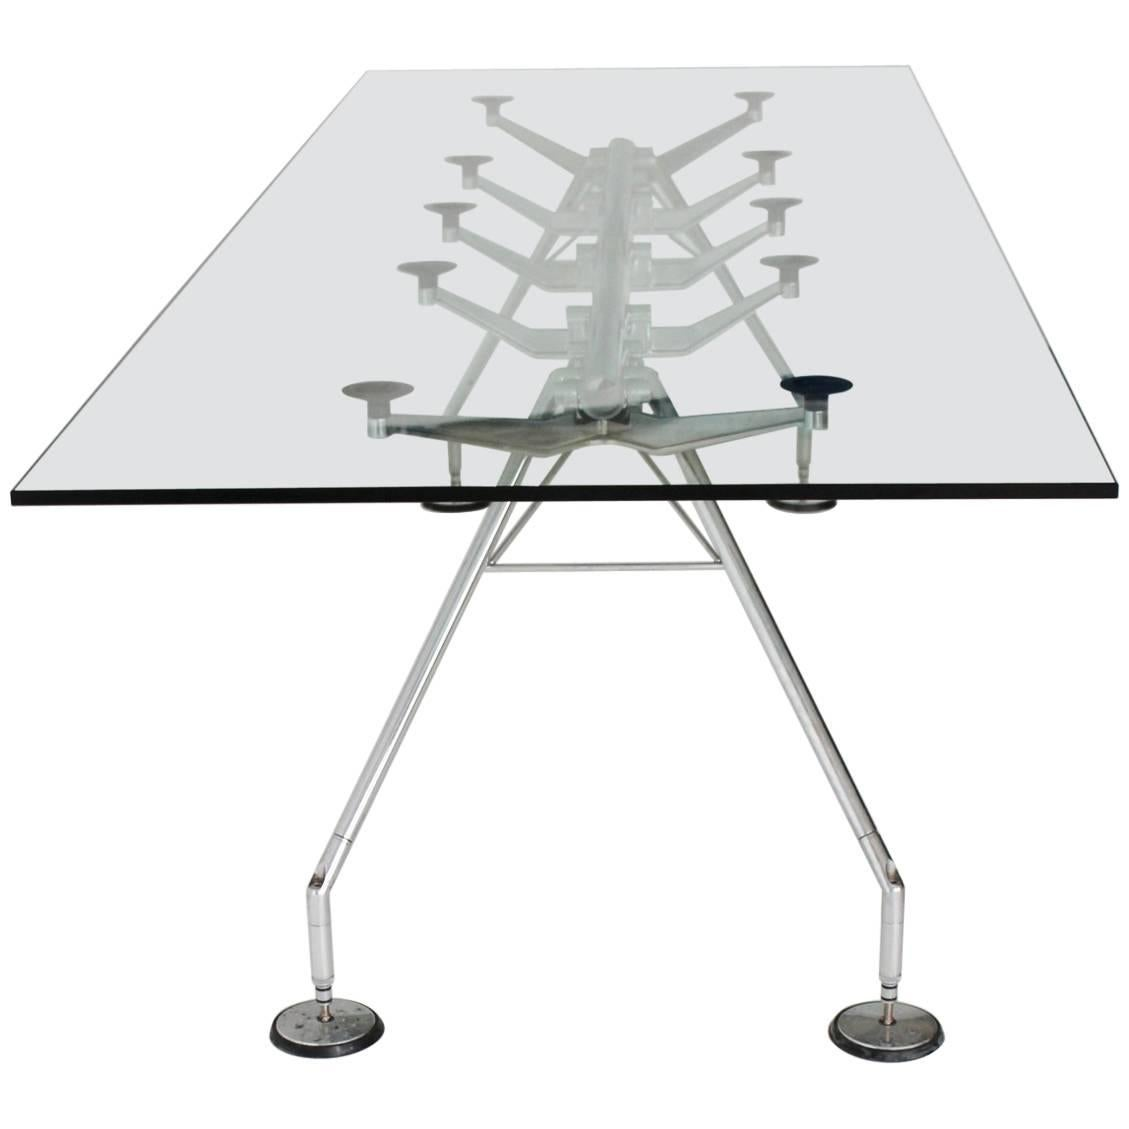 Modernist Vintage Chrome and Glass Dining Table Nomos by Sir Norman Foster 1986